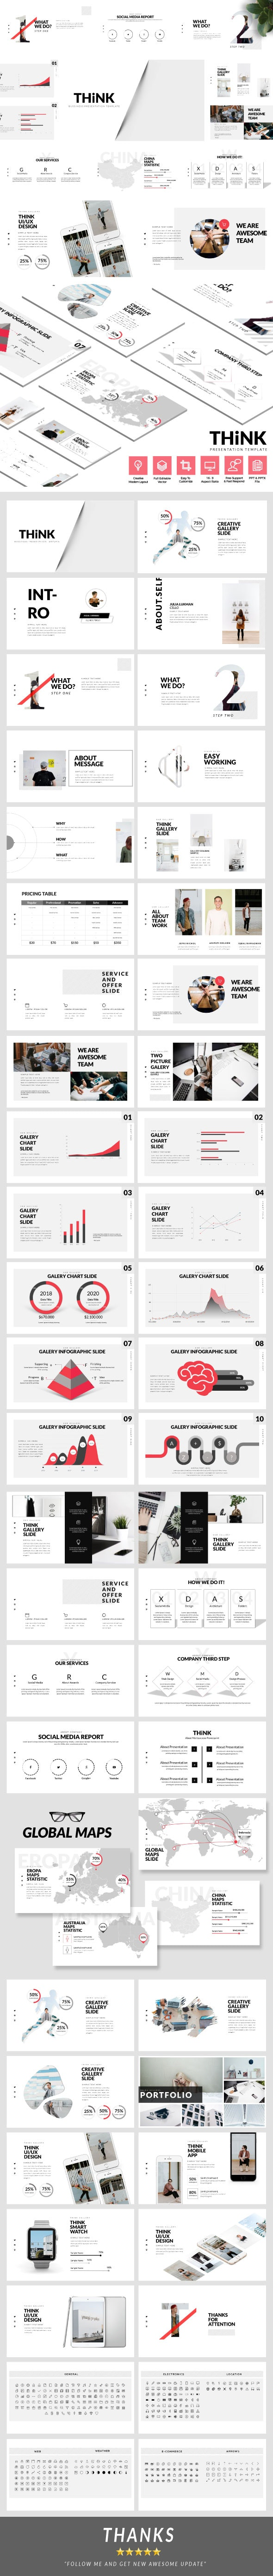 Think - Business Presentation Template - Business PowerPoint Templates